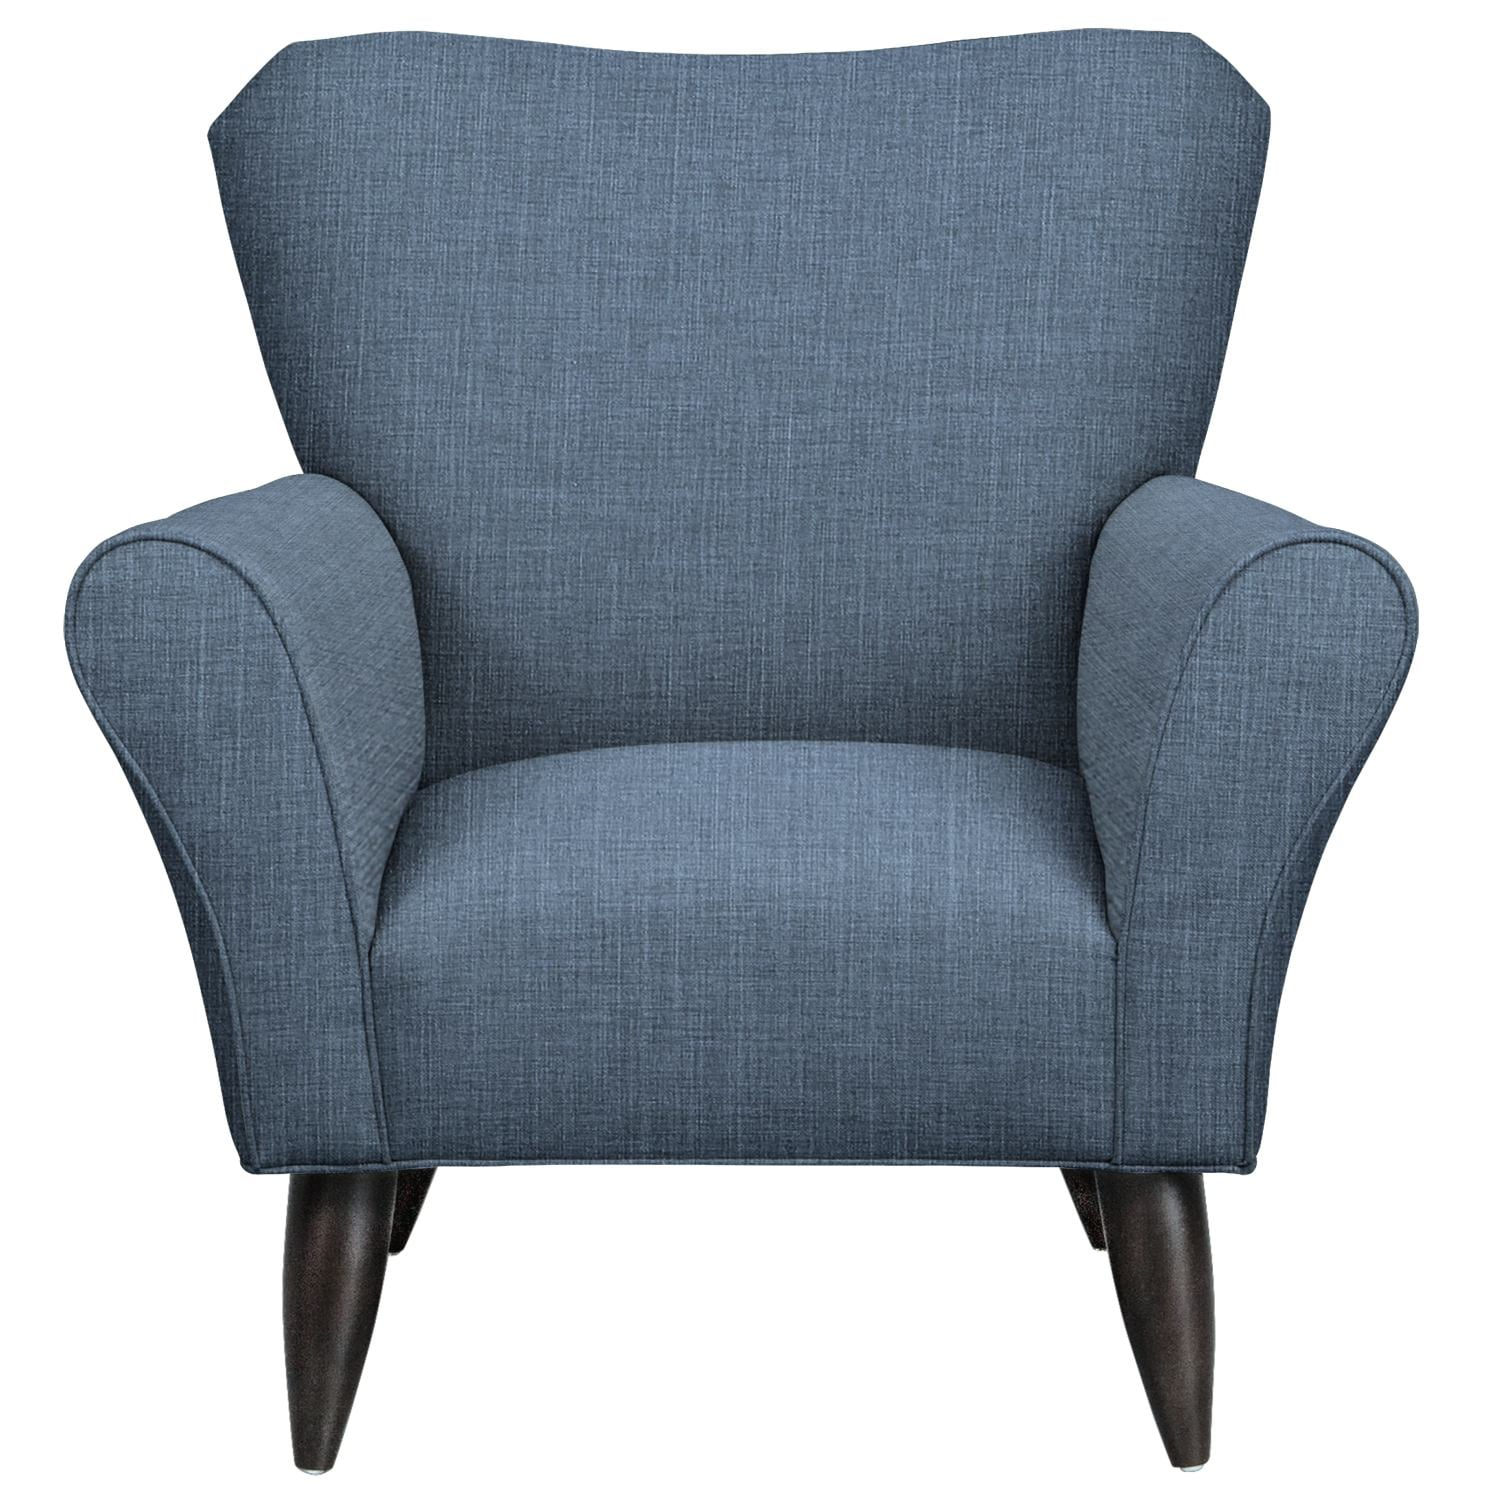 Living Room Furniture - Jessie Chair w/ Milford II Indigo Fabric